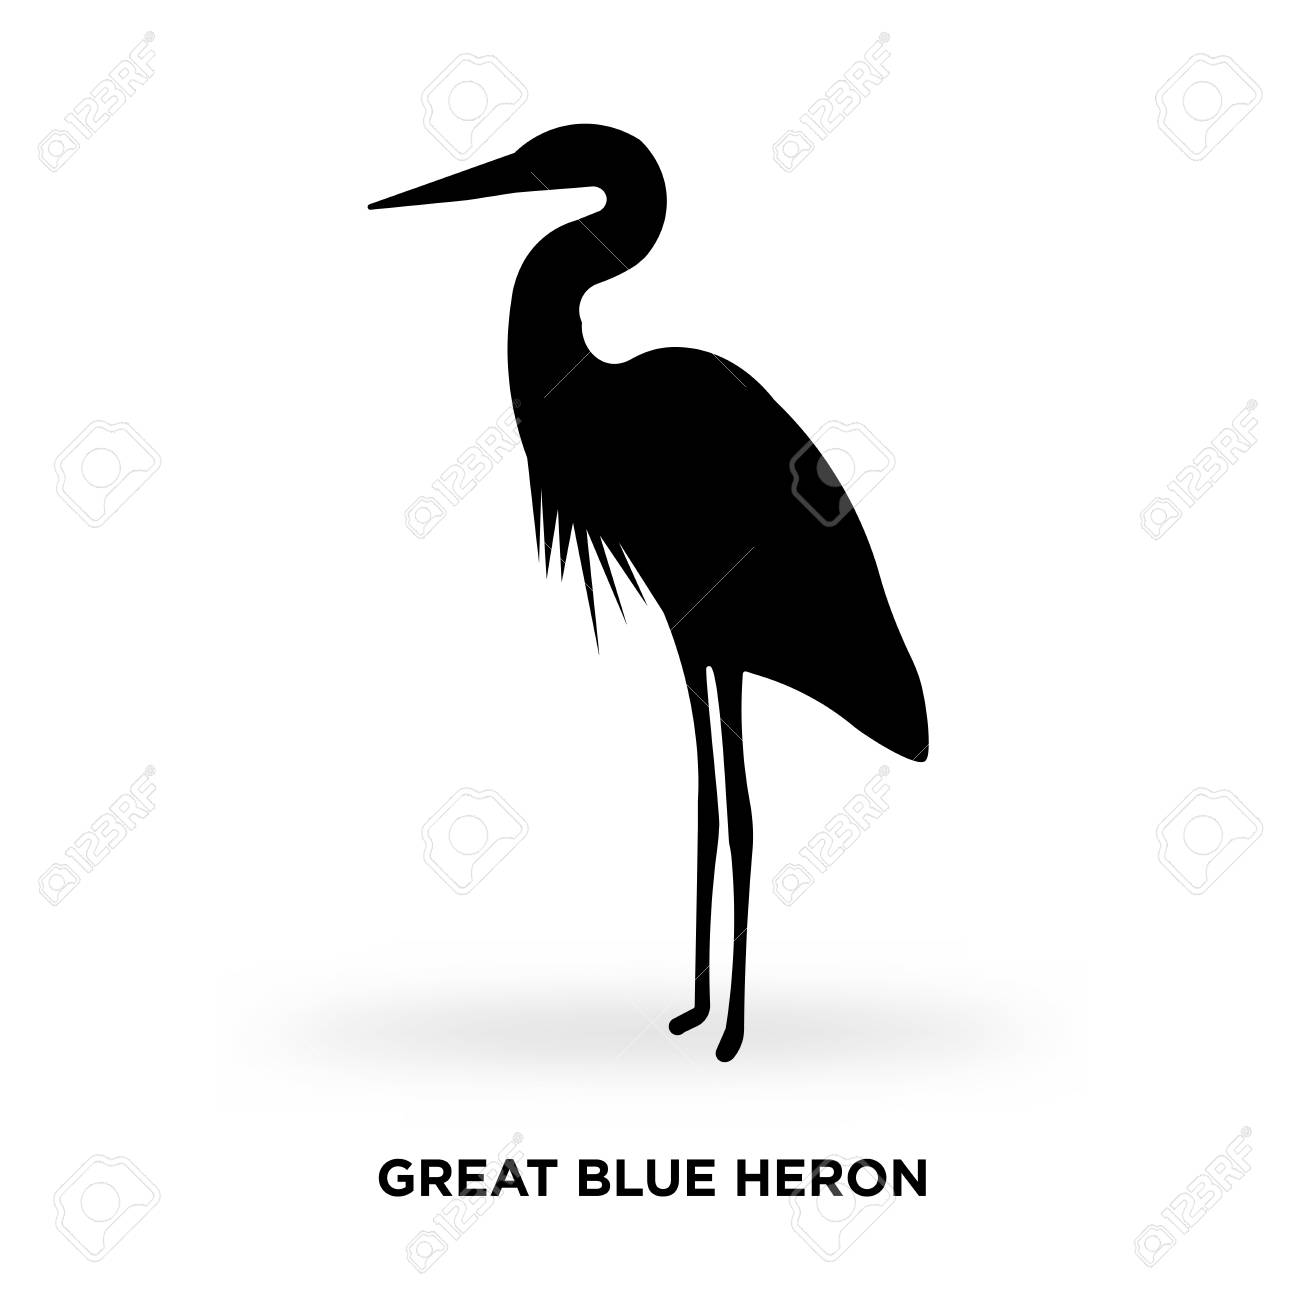 great blue heron silhouette.